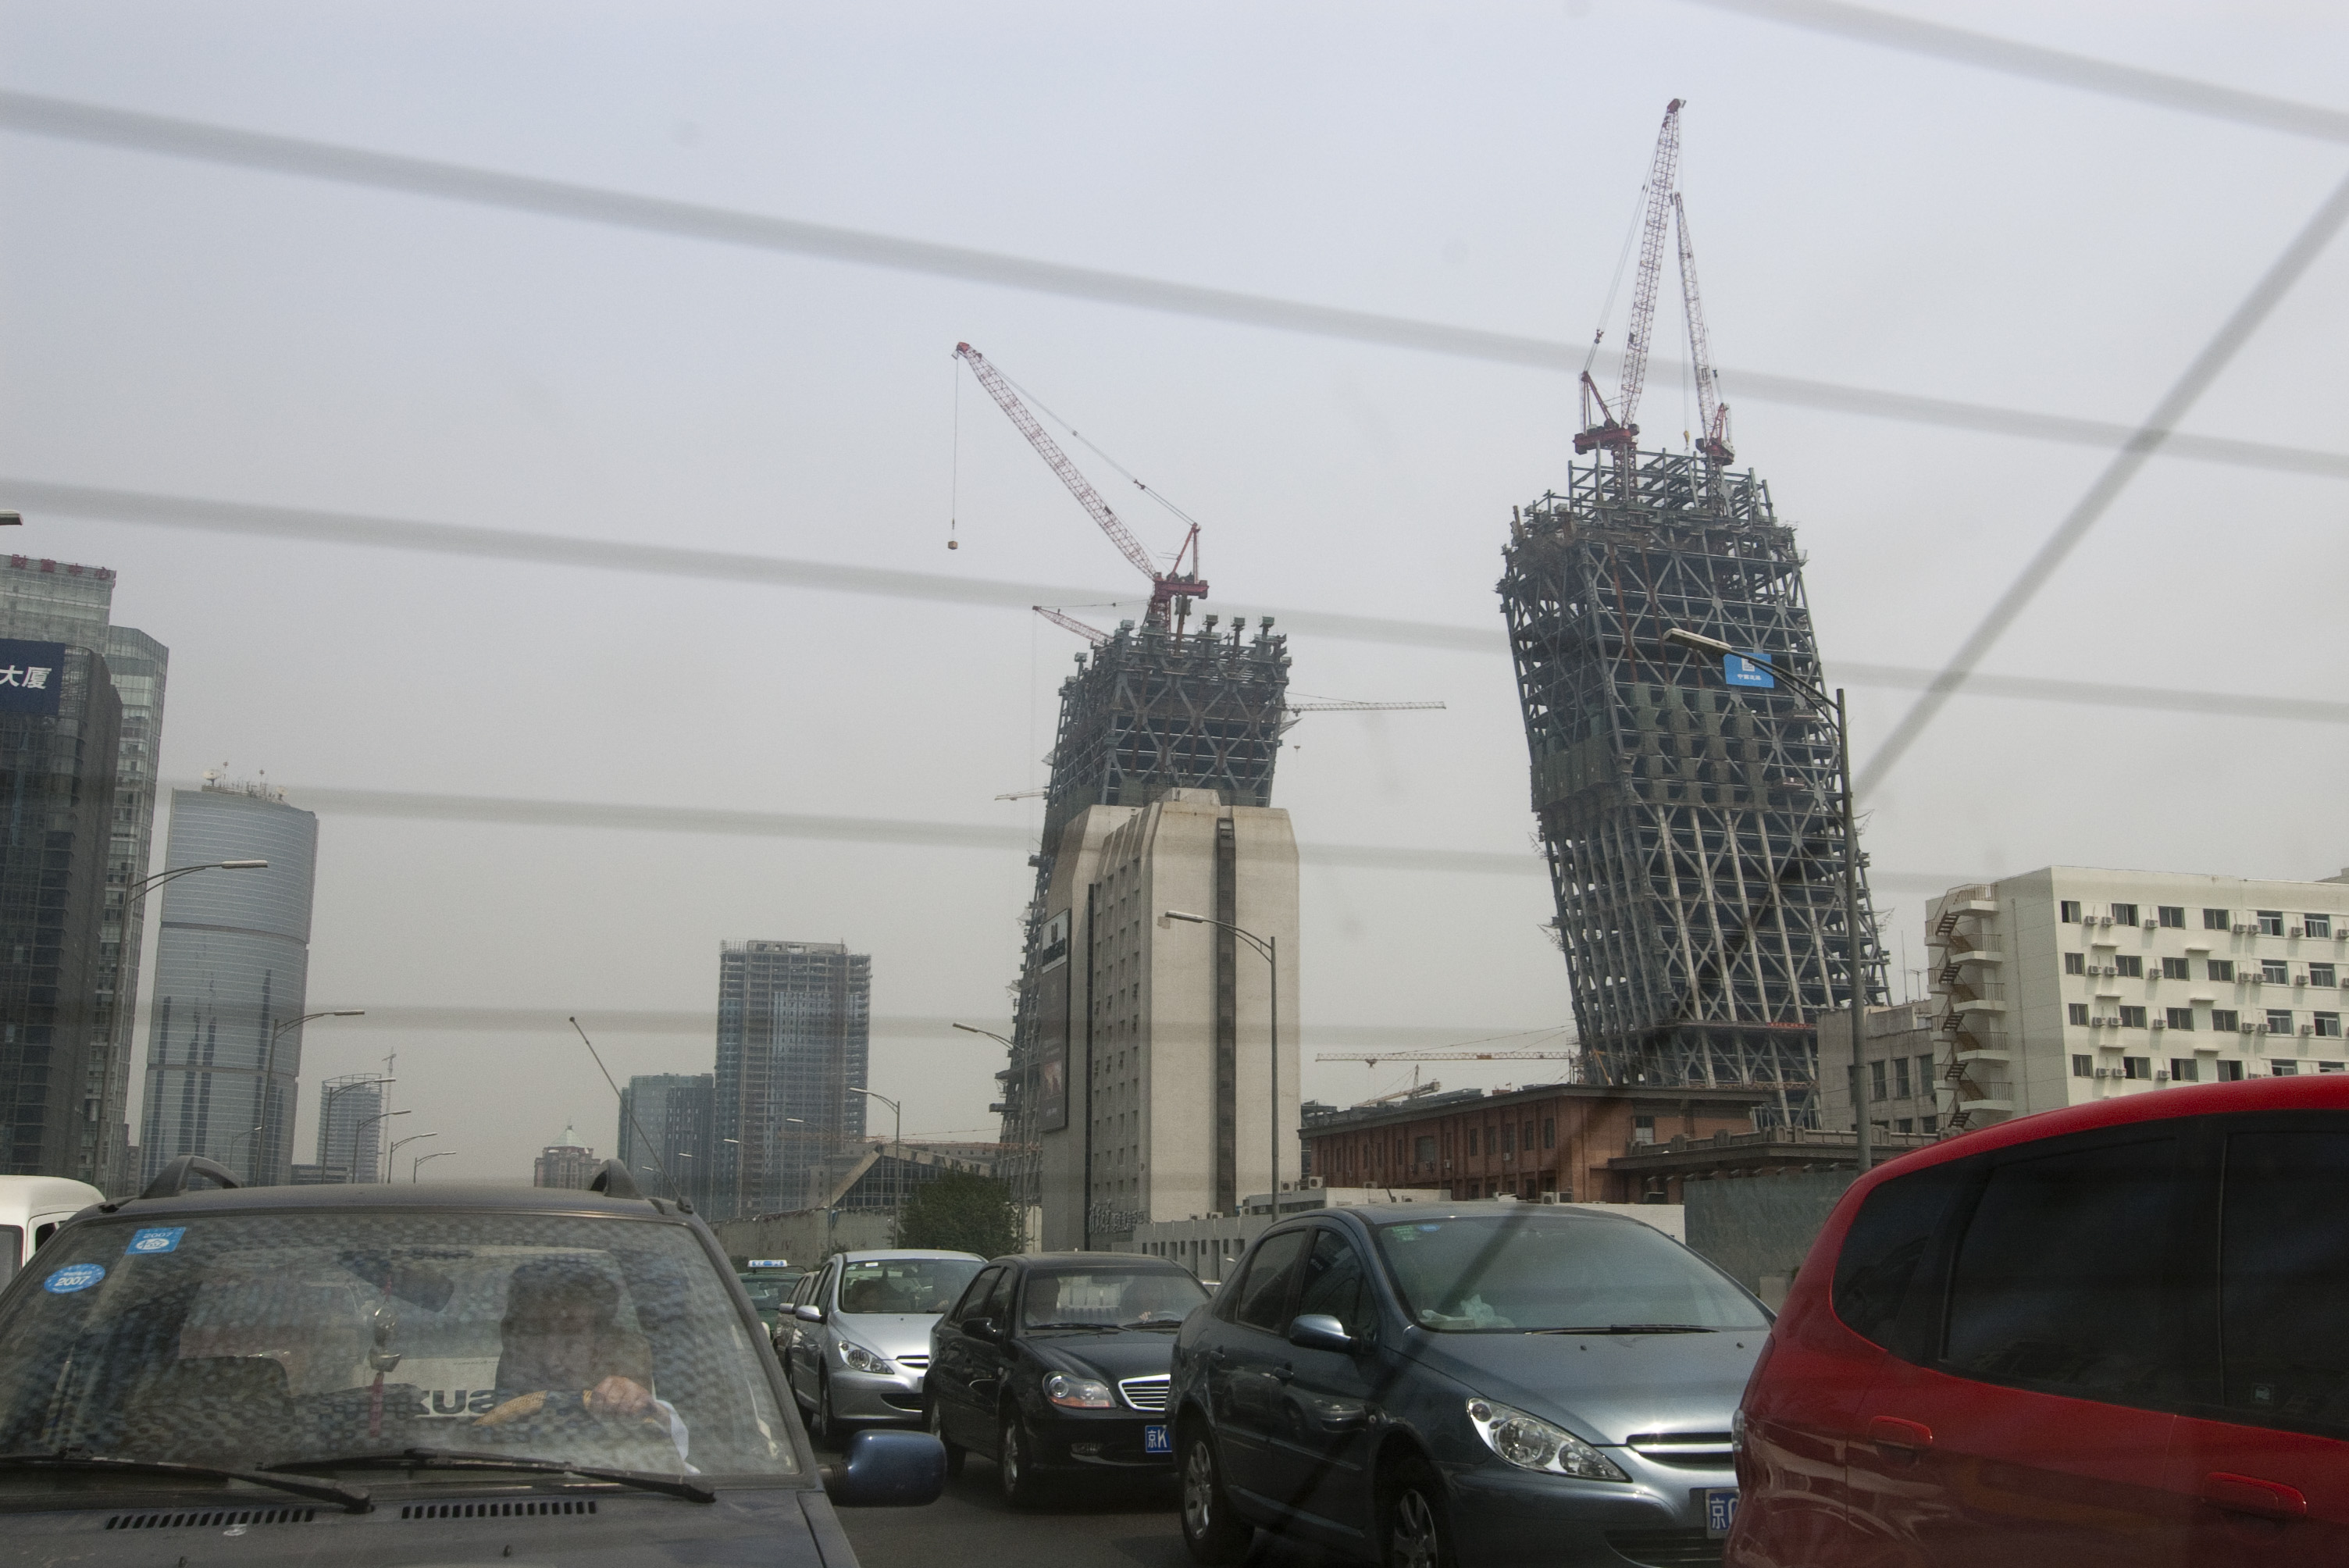 CCTV Headquarters construction